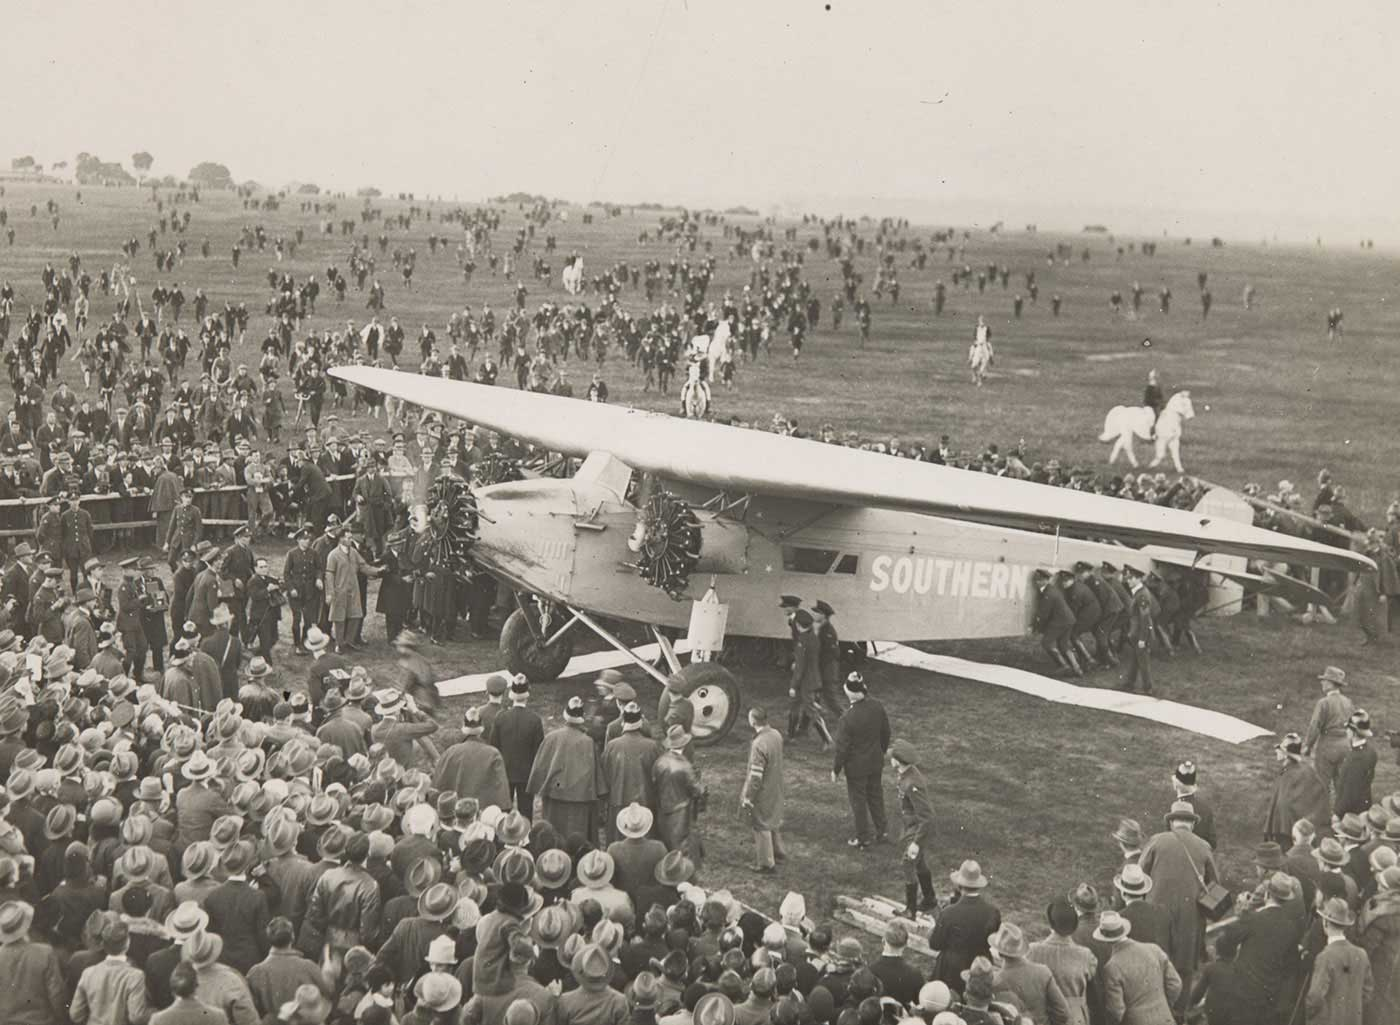 Black and white photo of a large crowd gathering around an air craft. - click to view larger image